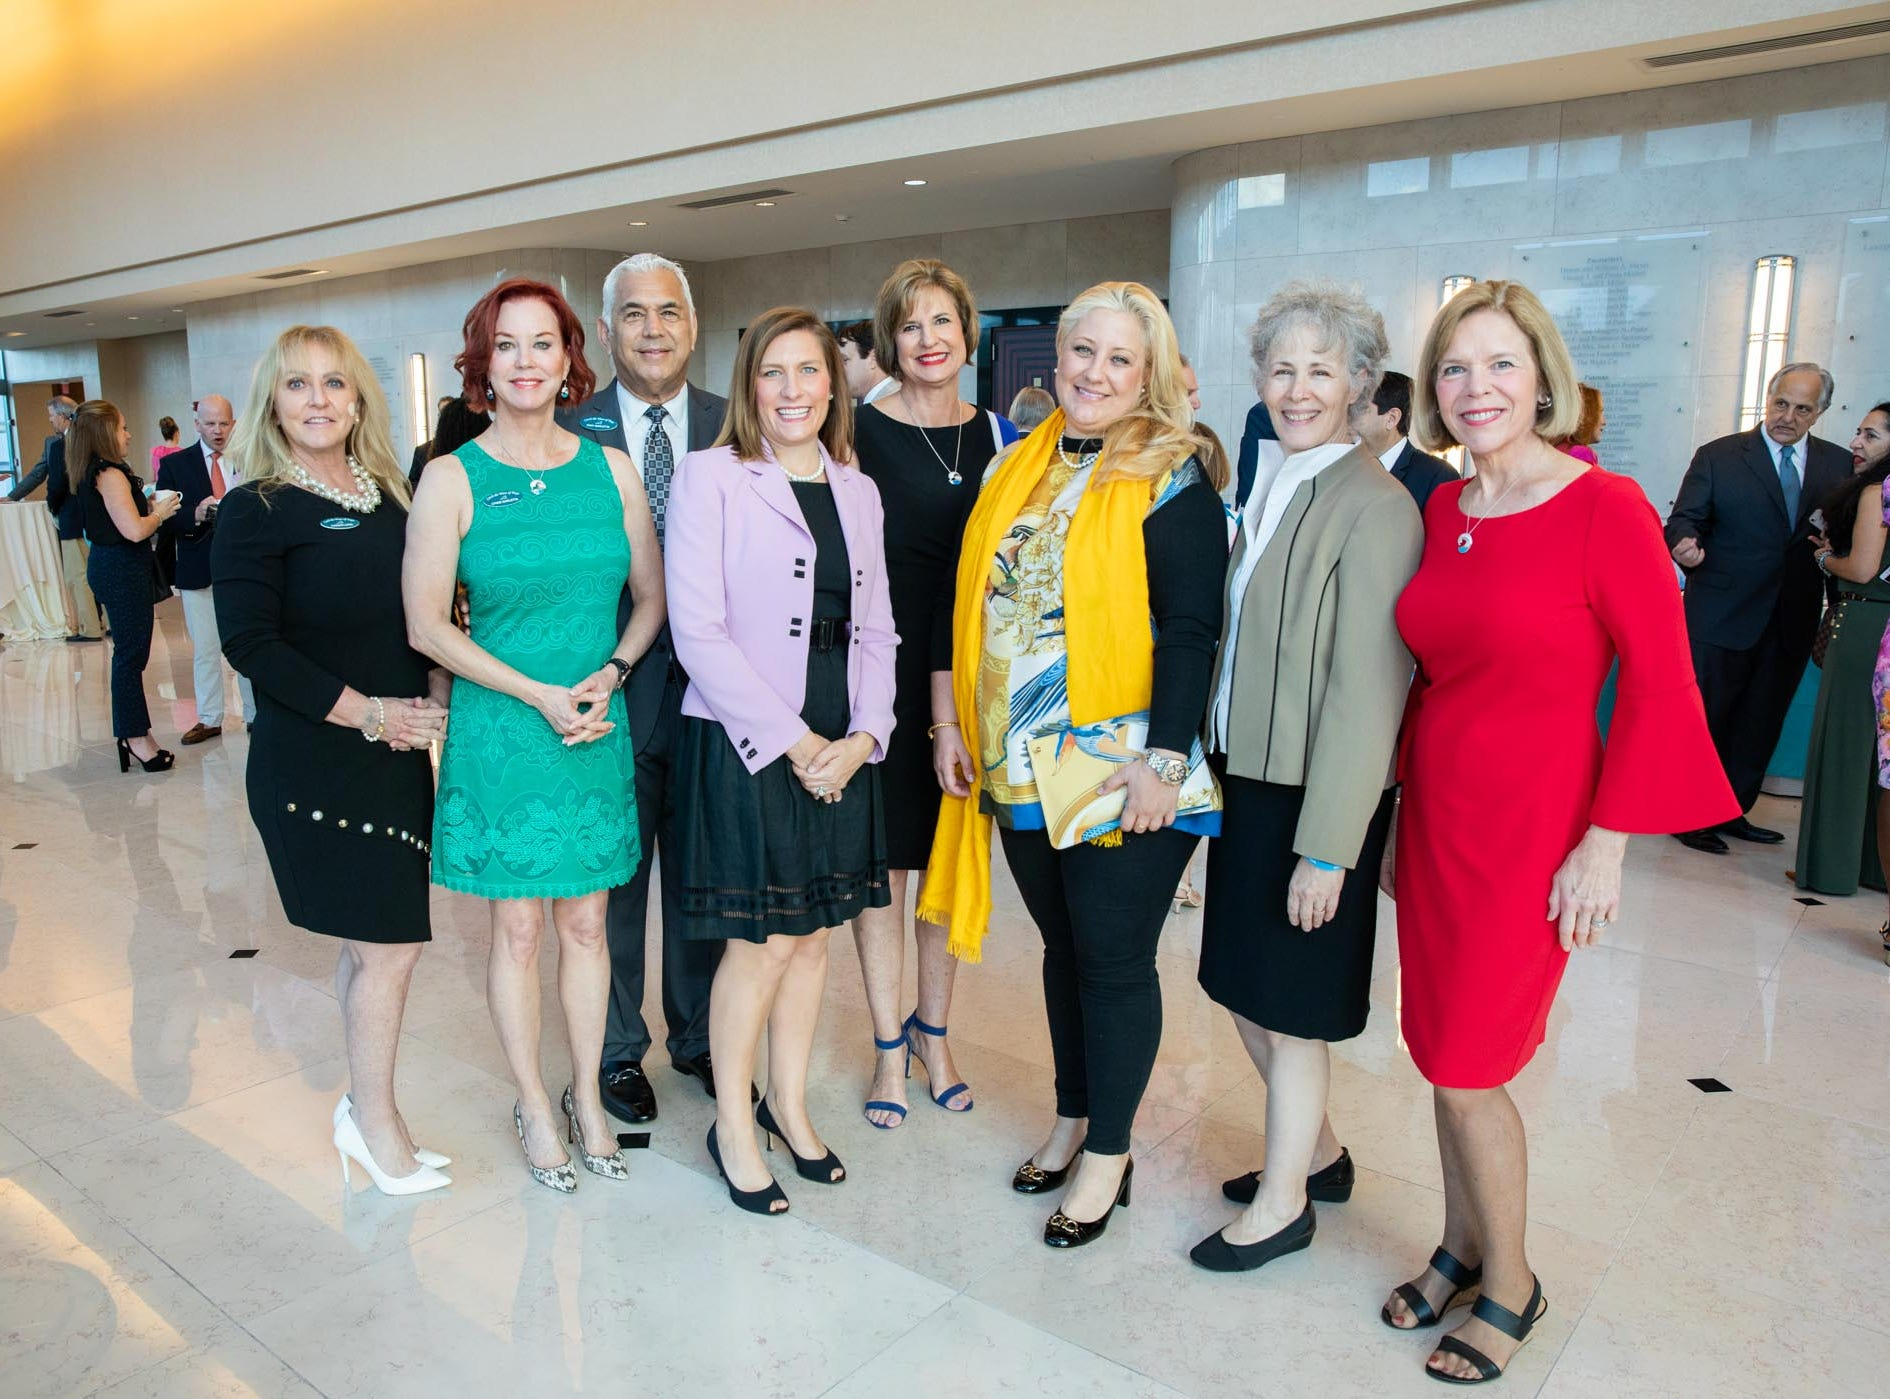 Catch the Wave of Hope supporters and board members, from left, Candace Lopes, Lynne Barletta, Tony Barletta, Kelly Laurine, Janice Norman, Denise Fraile, Jolinda Porfidio and Mona Salisbury at the Kravis Center in West Palm Beach.